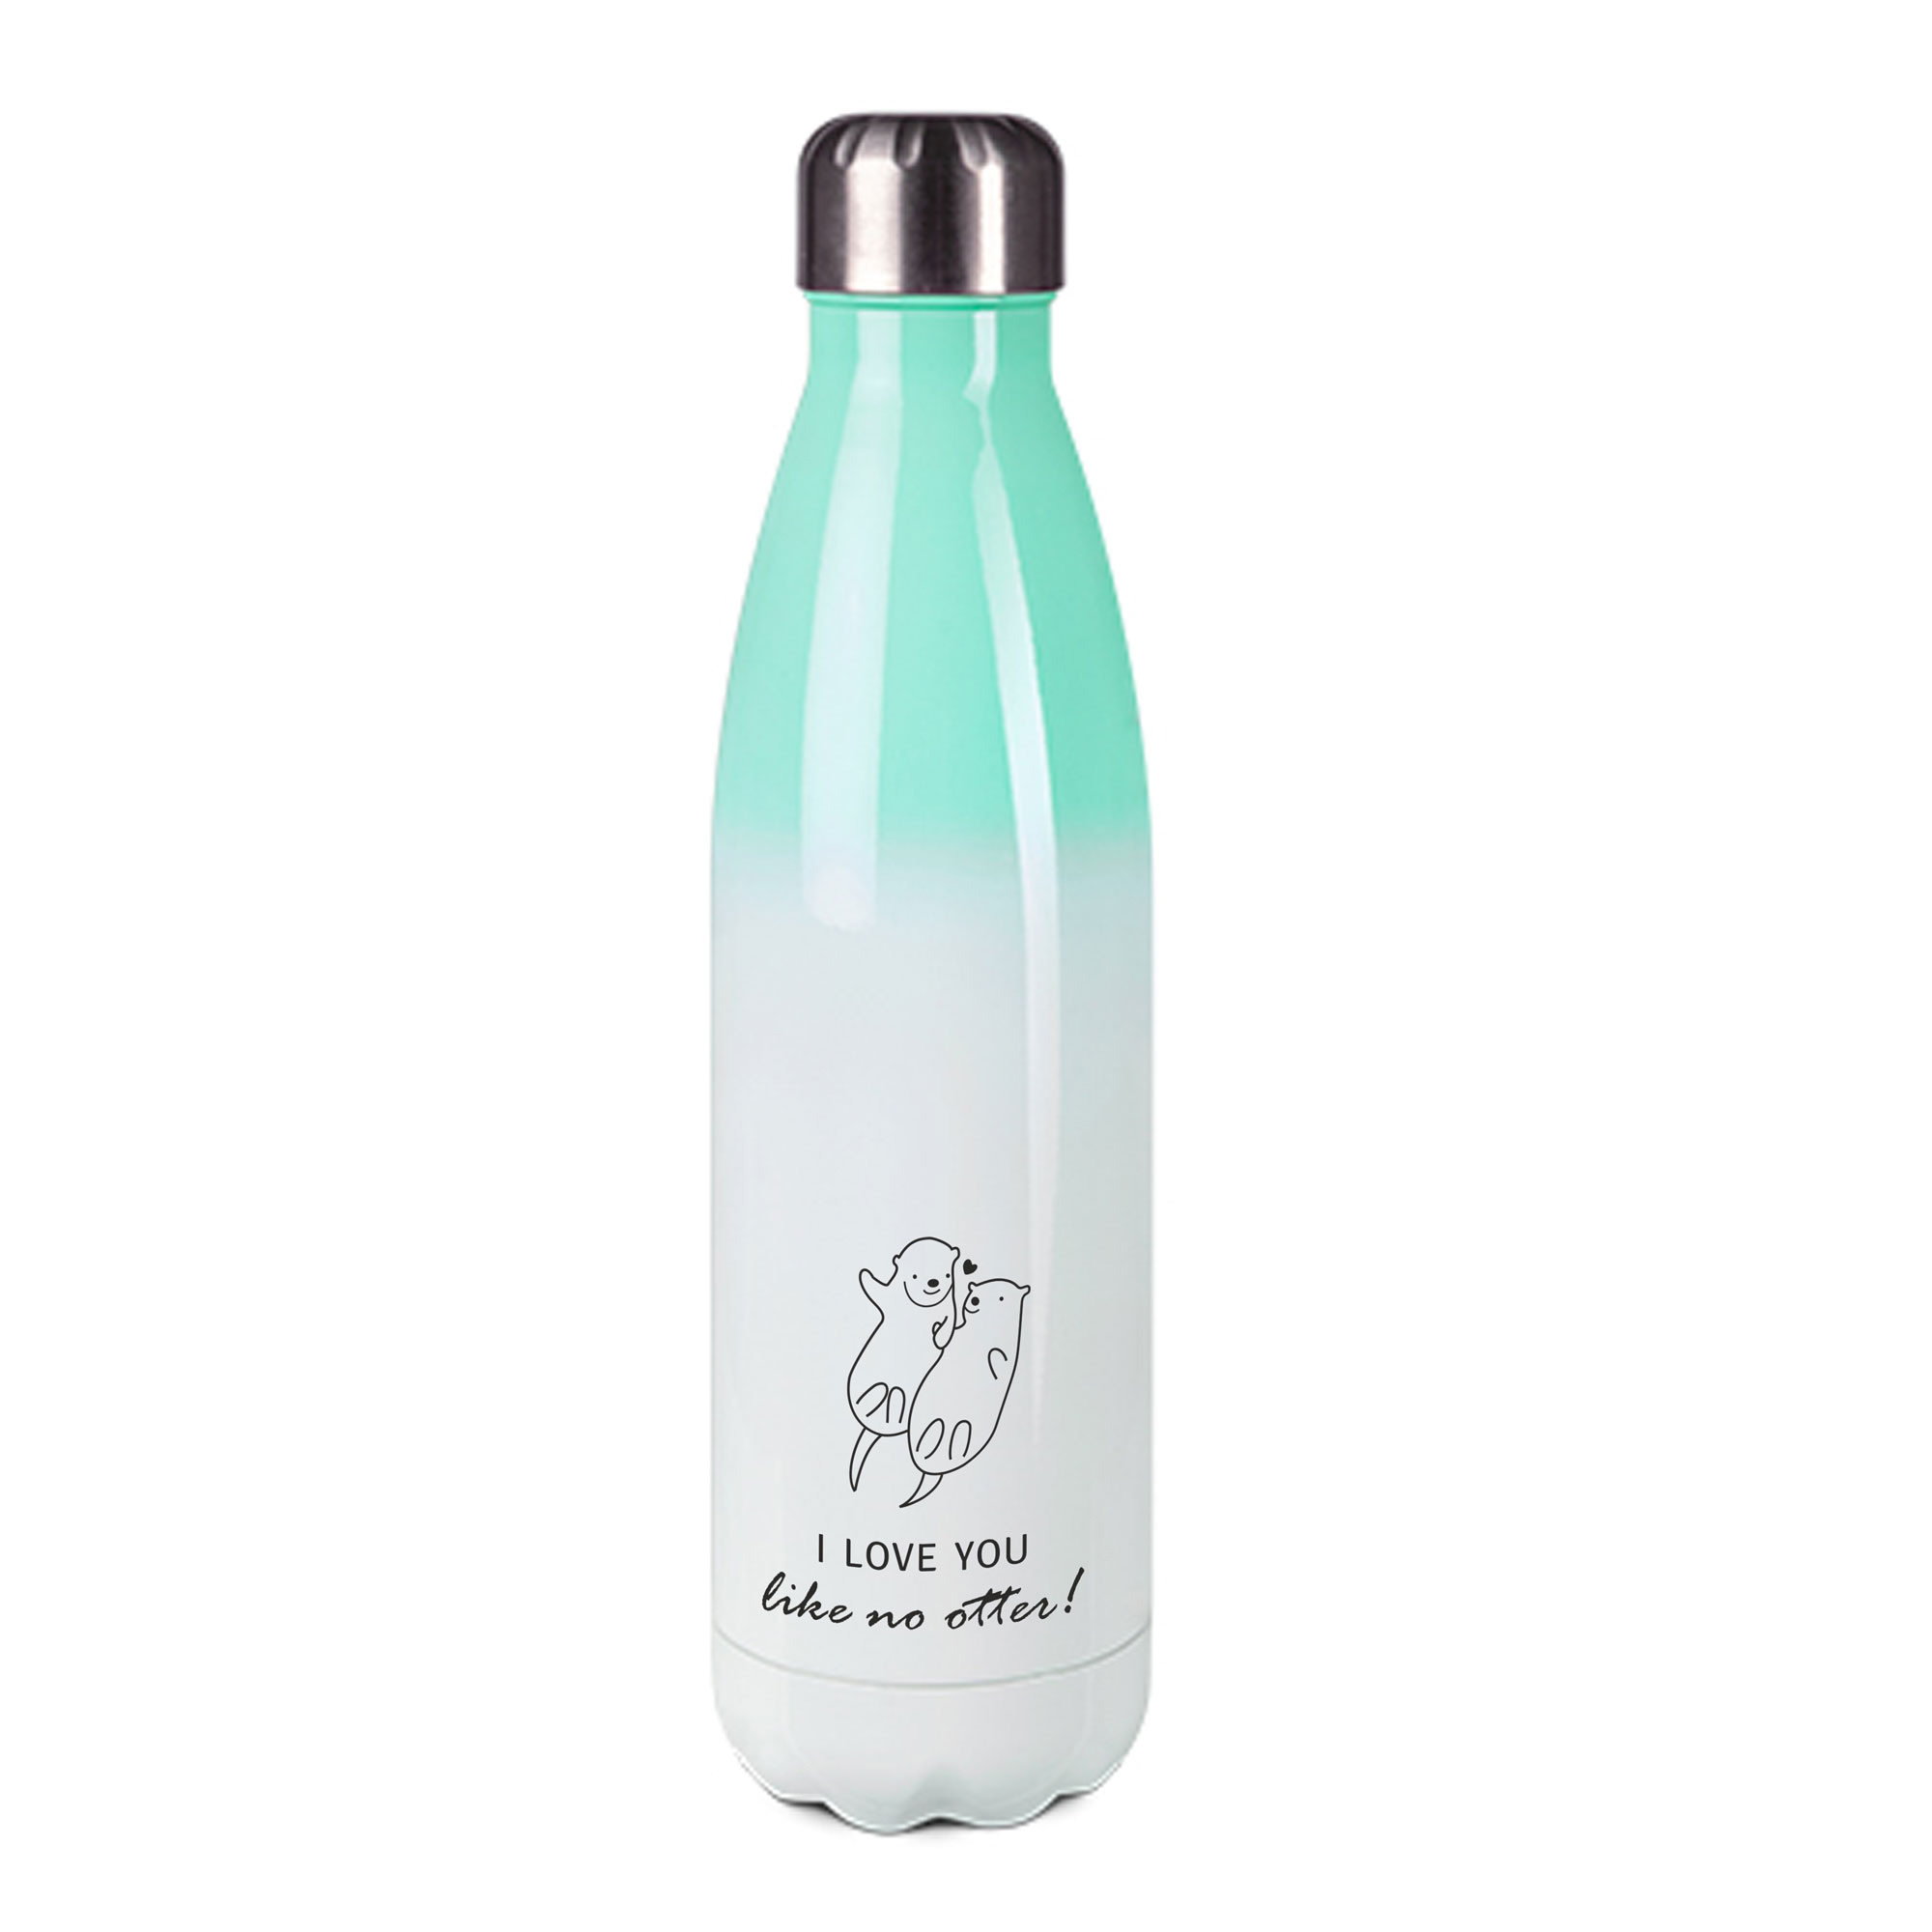 Edelstahl-Thermosflasche mint/weiß mit Druck: I LOVE YOU - DON'T LIKE OTTER